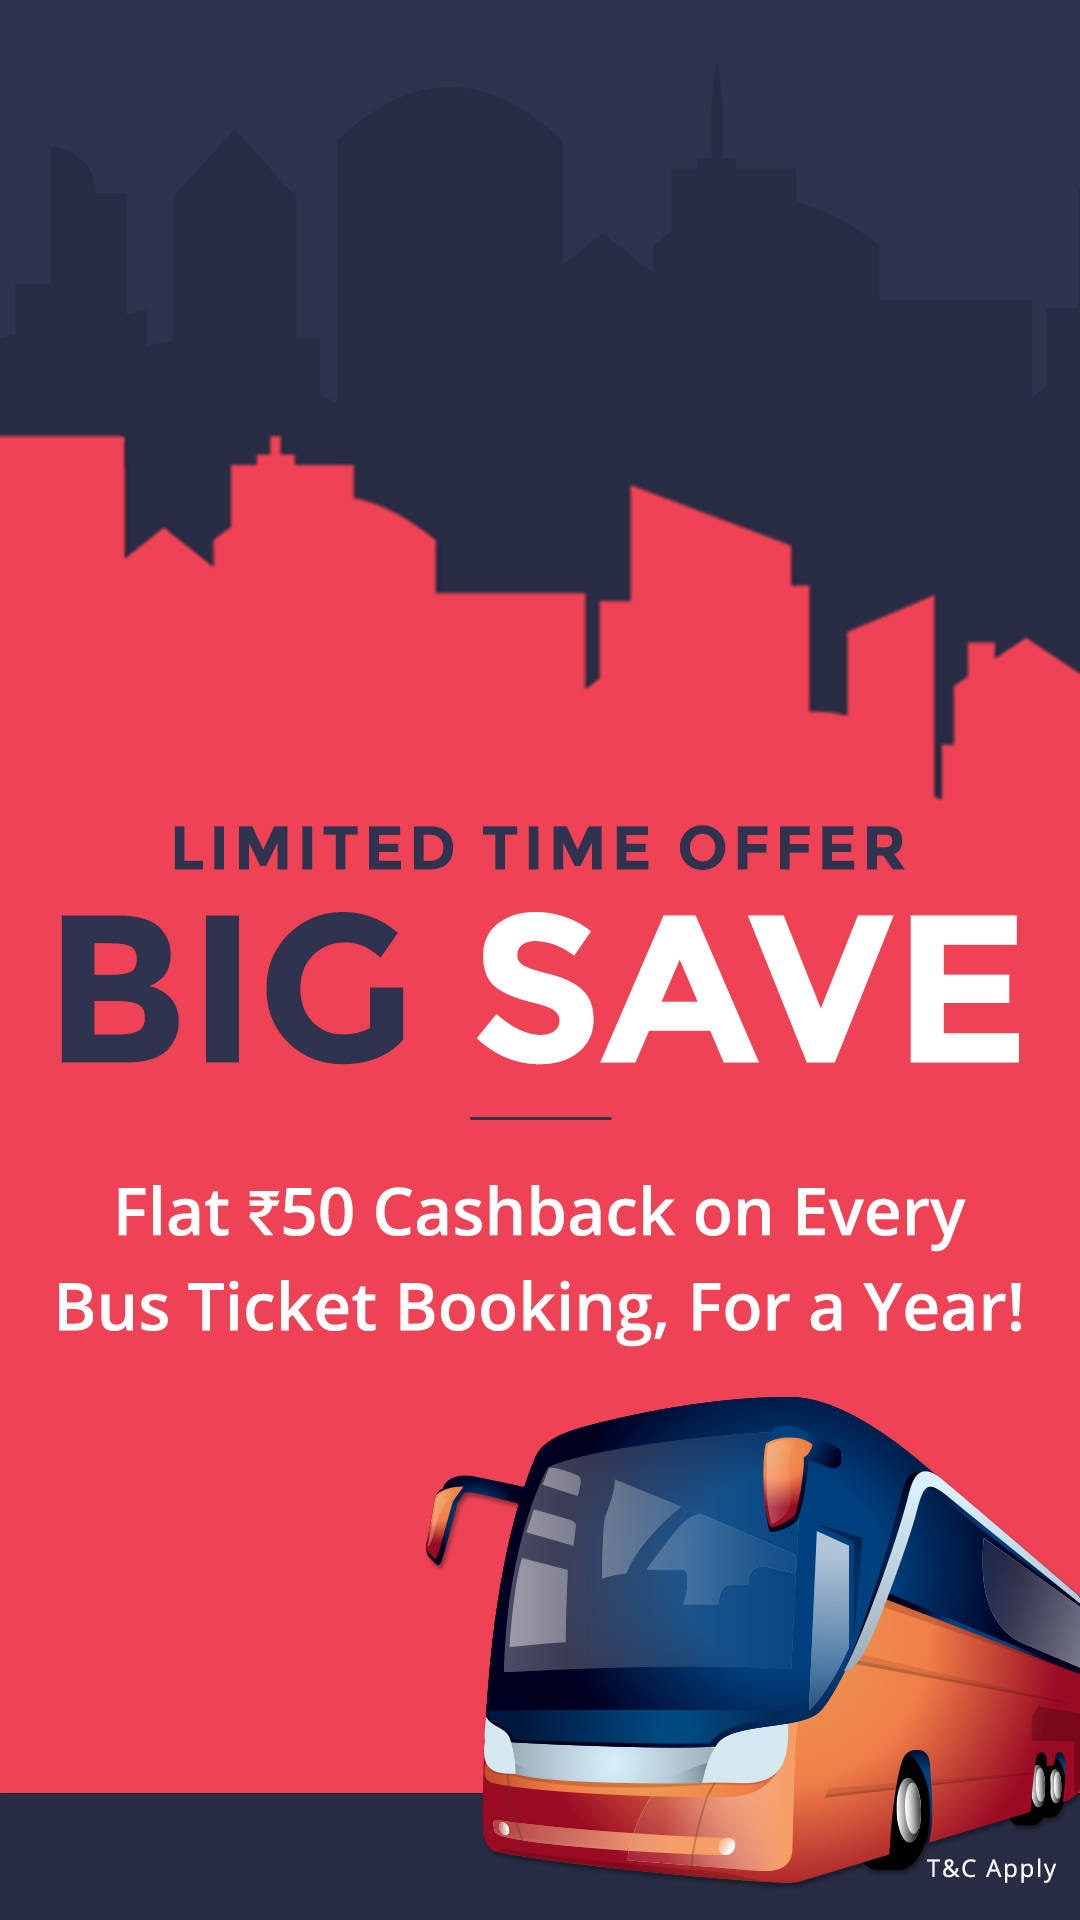 Diwali Special Offers: Amazing Paytm Travel Offers on Flights, Bus and Hotel - Save Big All Year Long - Flat Rs.50 Cashback on Every Bus Ticket Booking, for a Year Paytm Deal